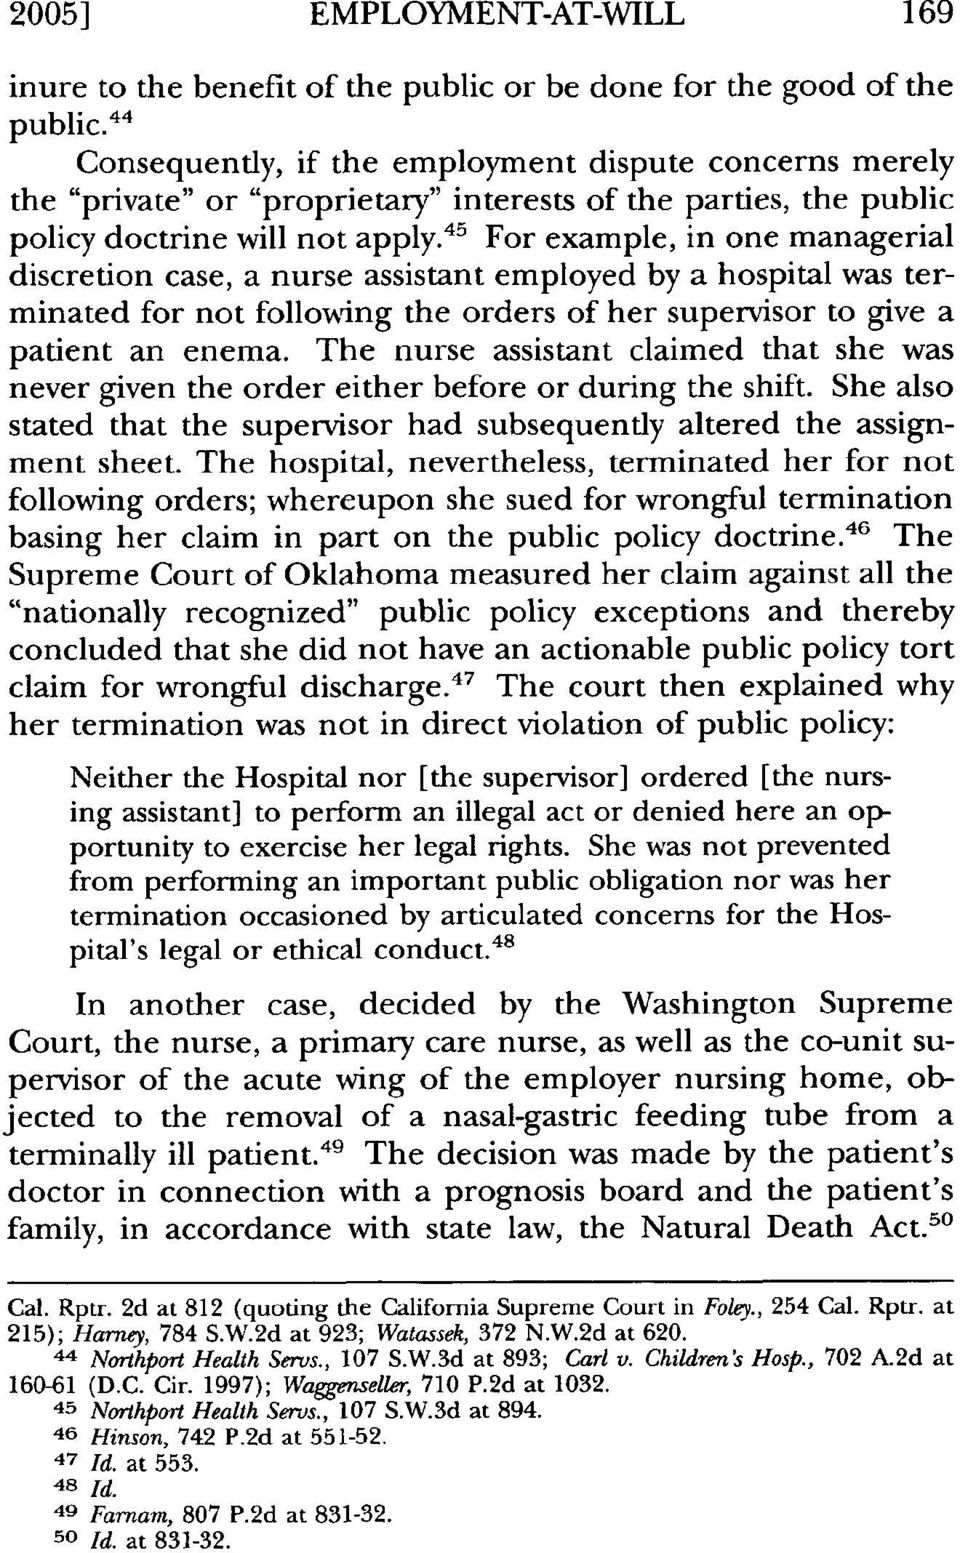 45 For example, in one managerial discretion case, a nurse assistant employed by a hospital was terminated for not following the orders of her supervisor to give a patient an enema.